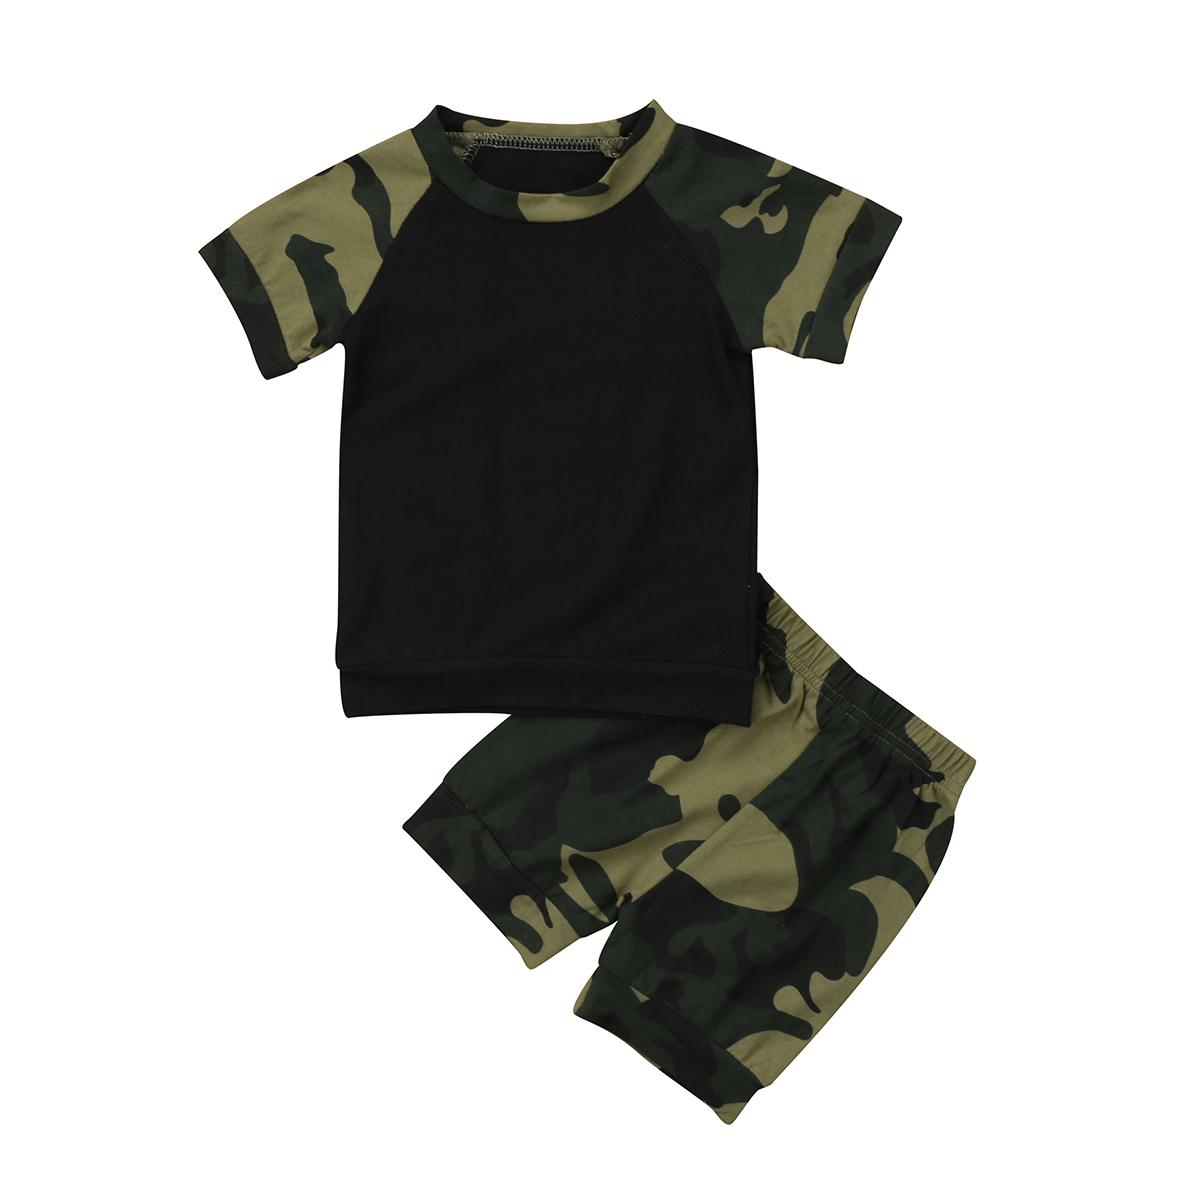 a3f2a2e6c719 2019 Baby Boys Girls Camo Clothing Set Newborn Kids Short Sleeve Camo Top T  Shirt + Pants Outfit Set Clothes From Sightly